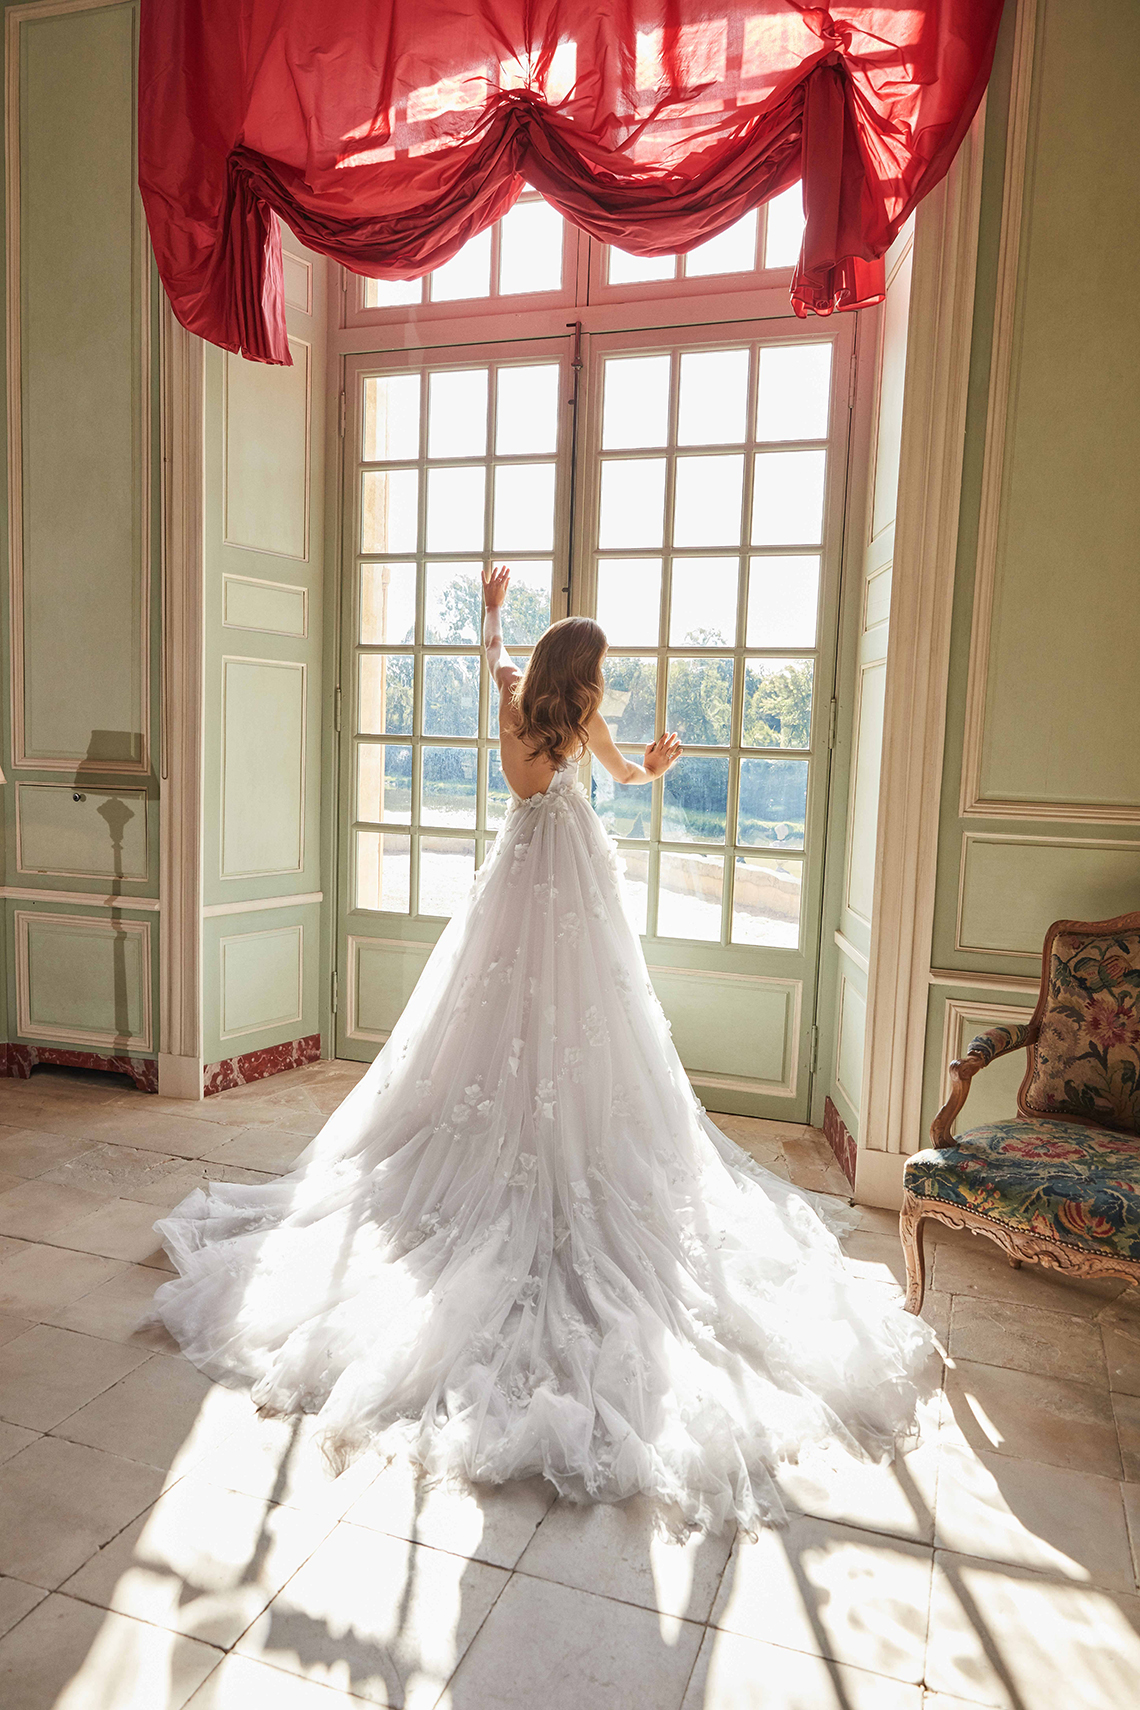 Galia Lahav Fancy White 2020 Wedding Dress Collection – Ruth 1